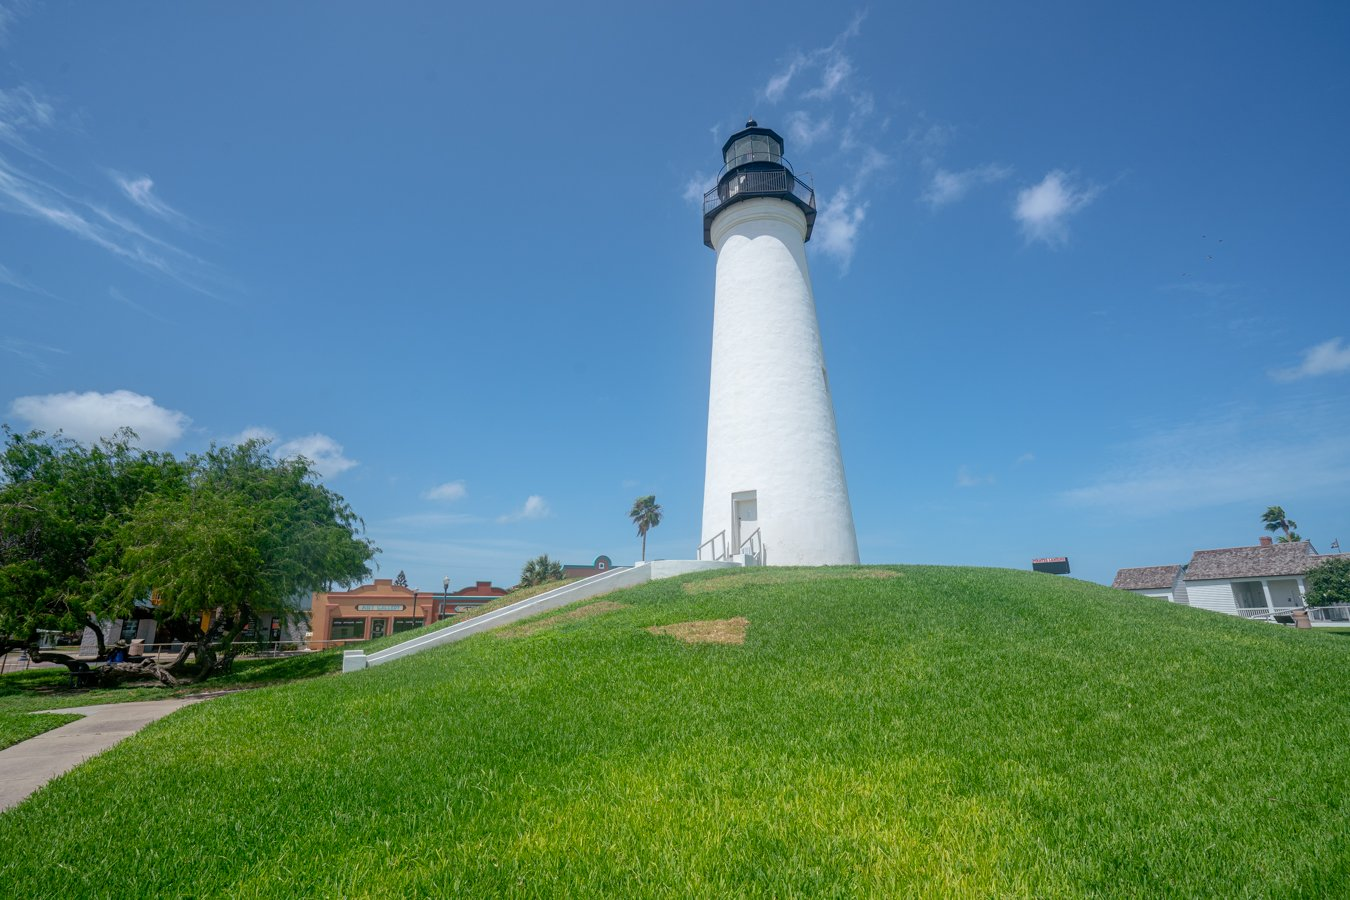 port isabel lighthouse, one of the best things to do in port isabel texas